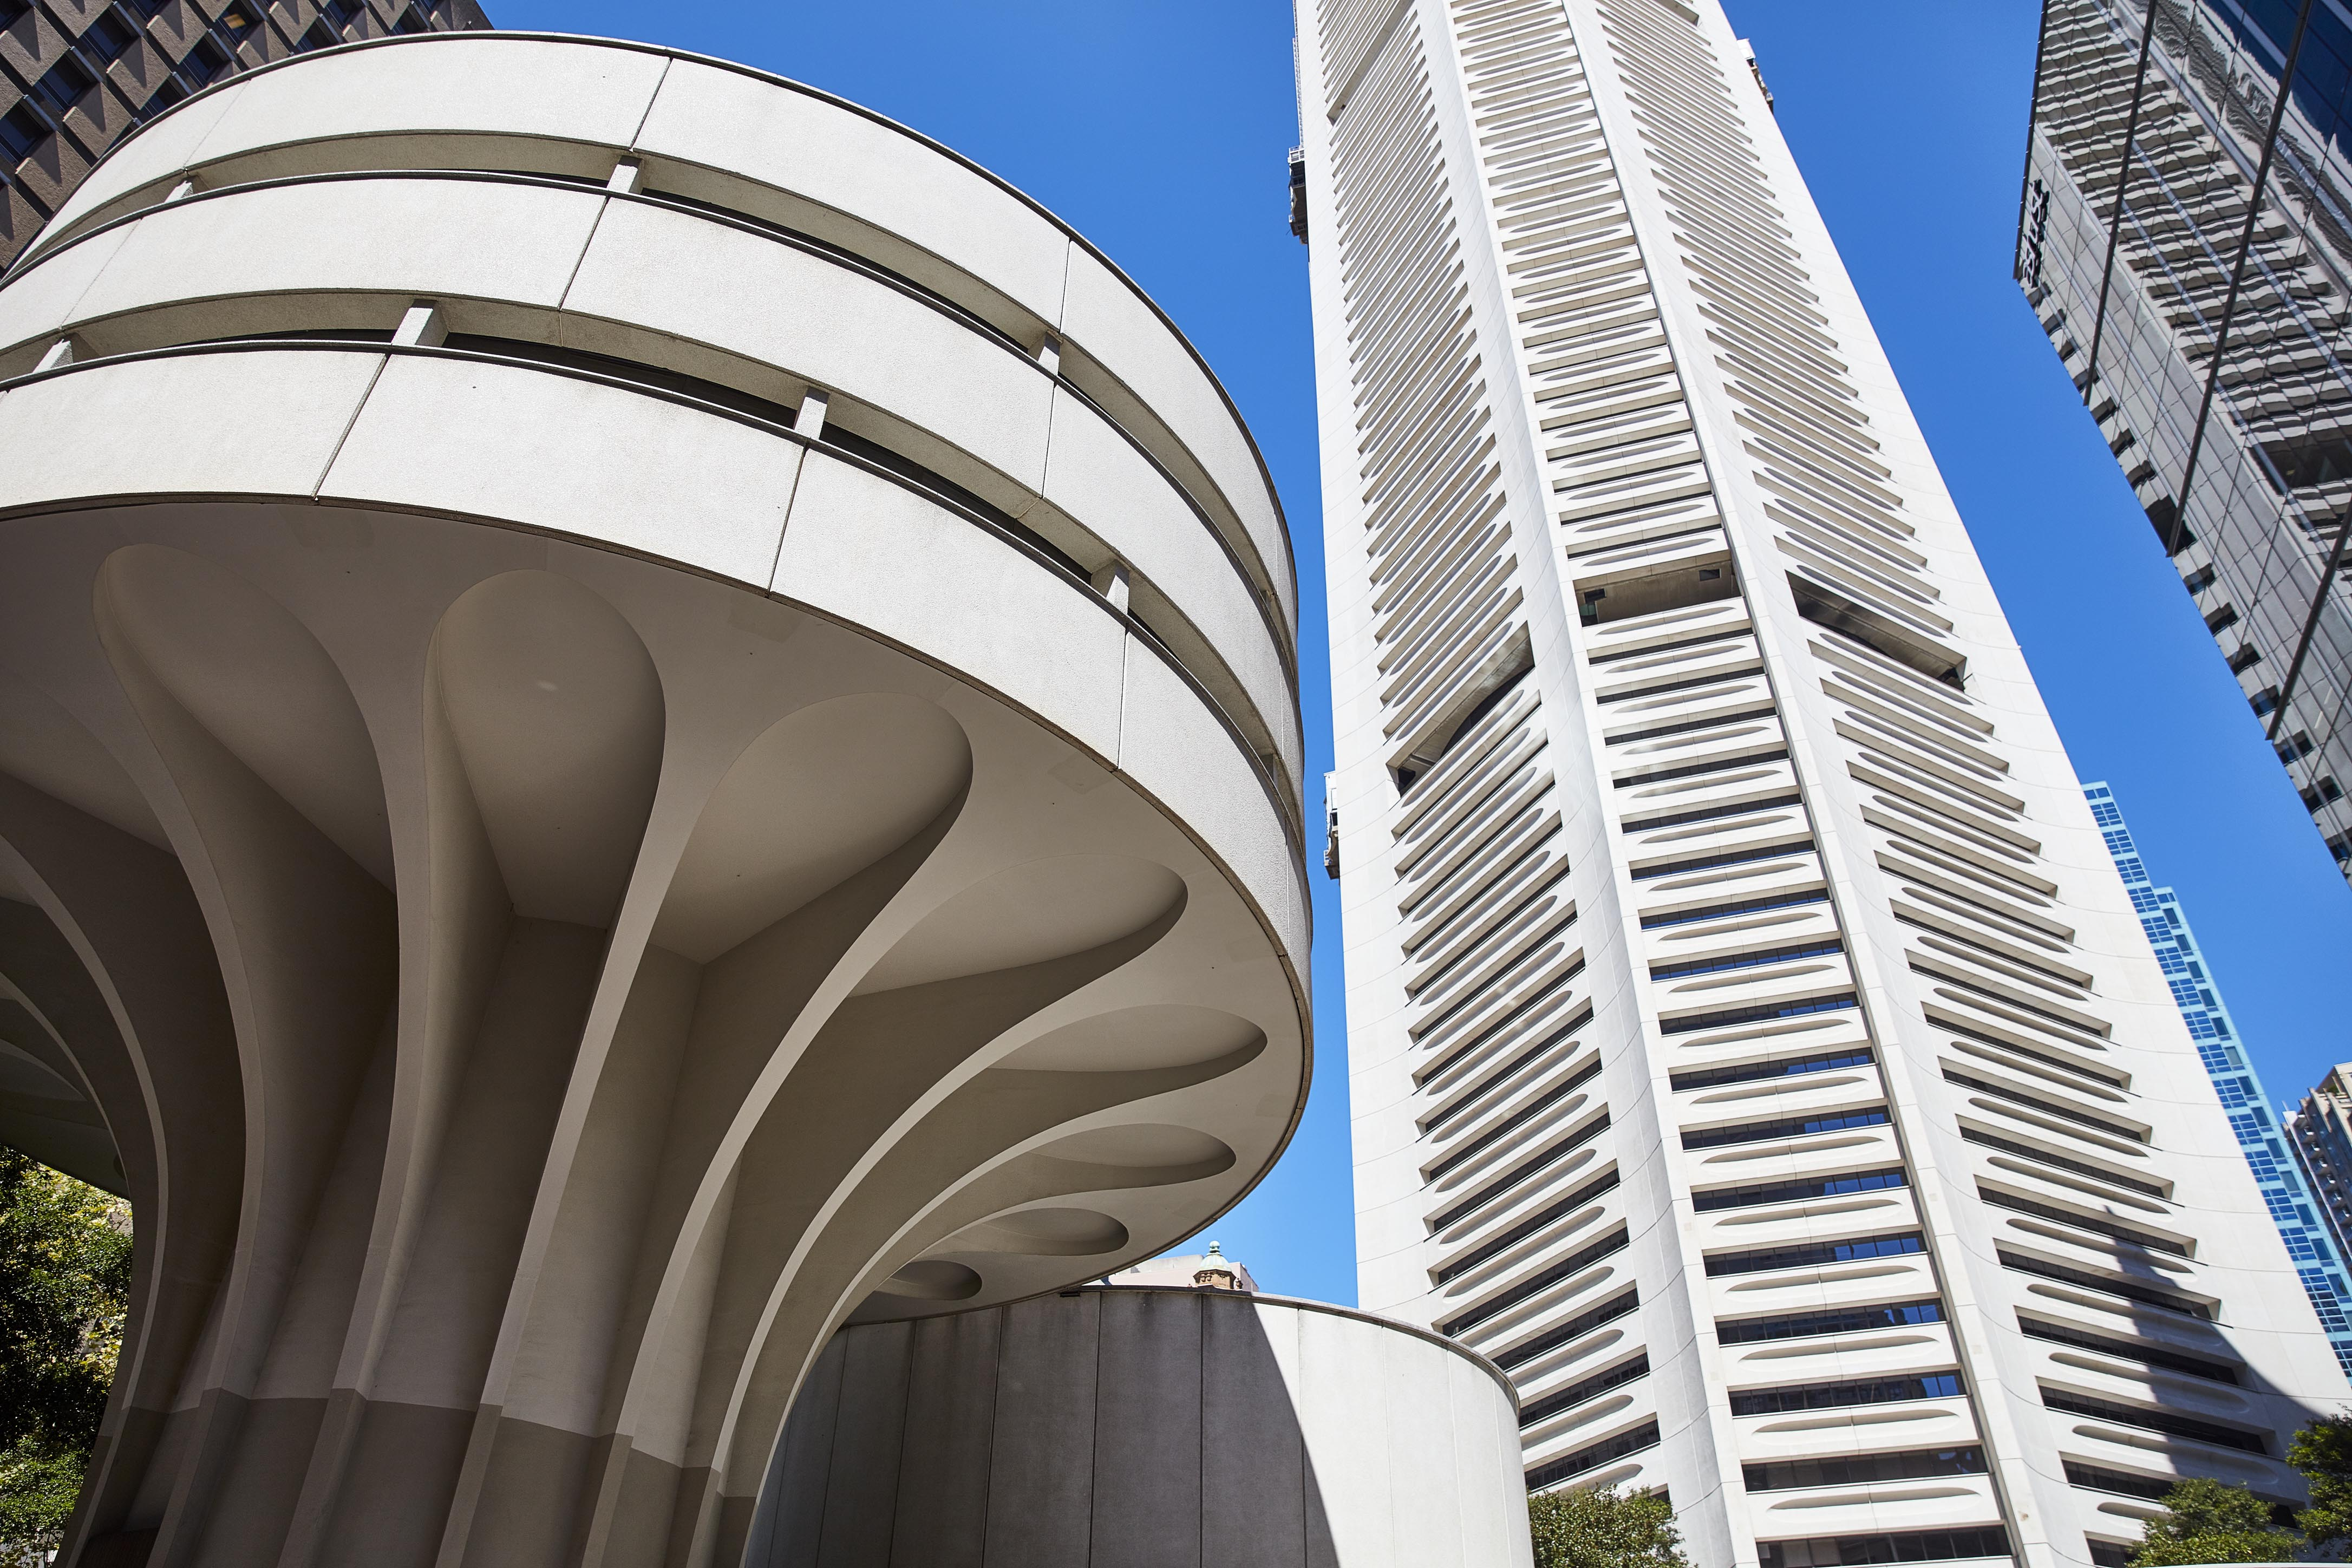 The MLC Centre is one of Harry Seidler's most well-known buildings.